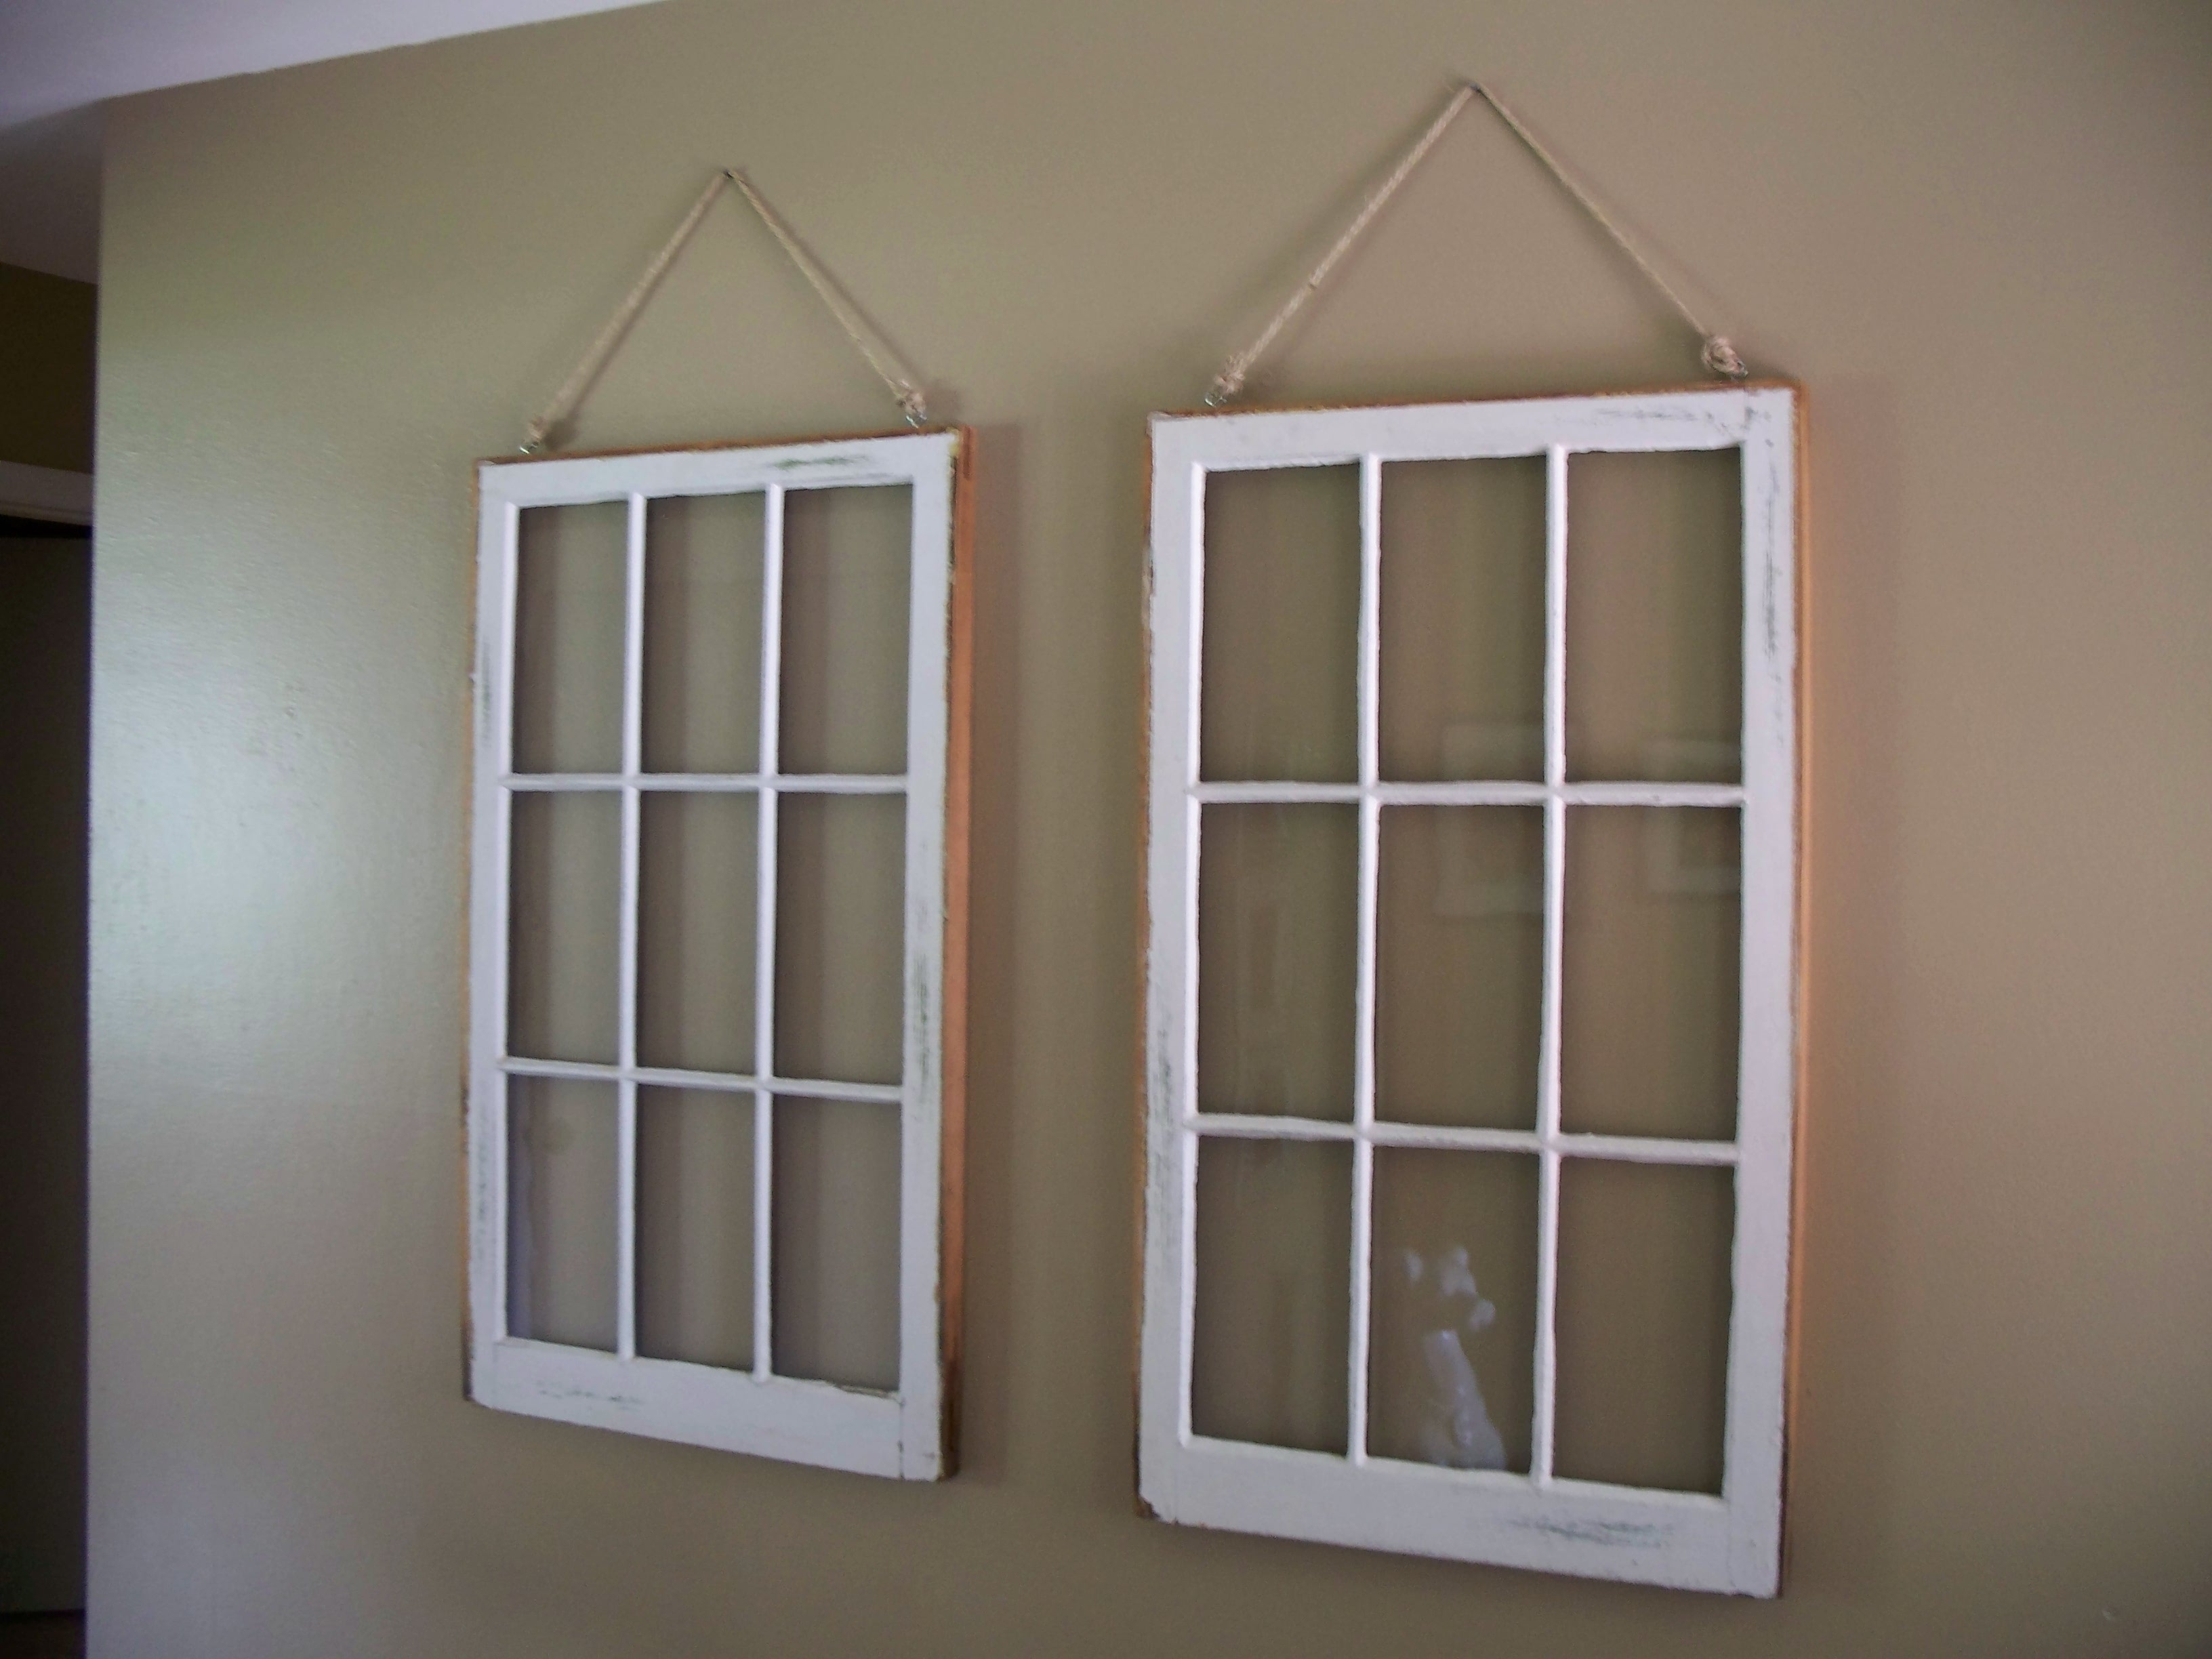 Stunning Interior With Hanging Diy Window Frame Also, Window Frame With Regard To Current Window Frame Wall Art (View 4 of 15)